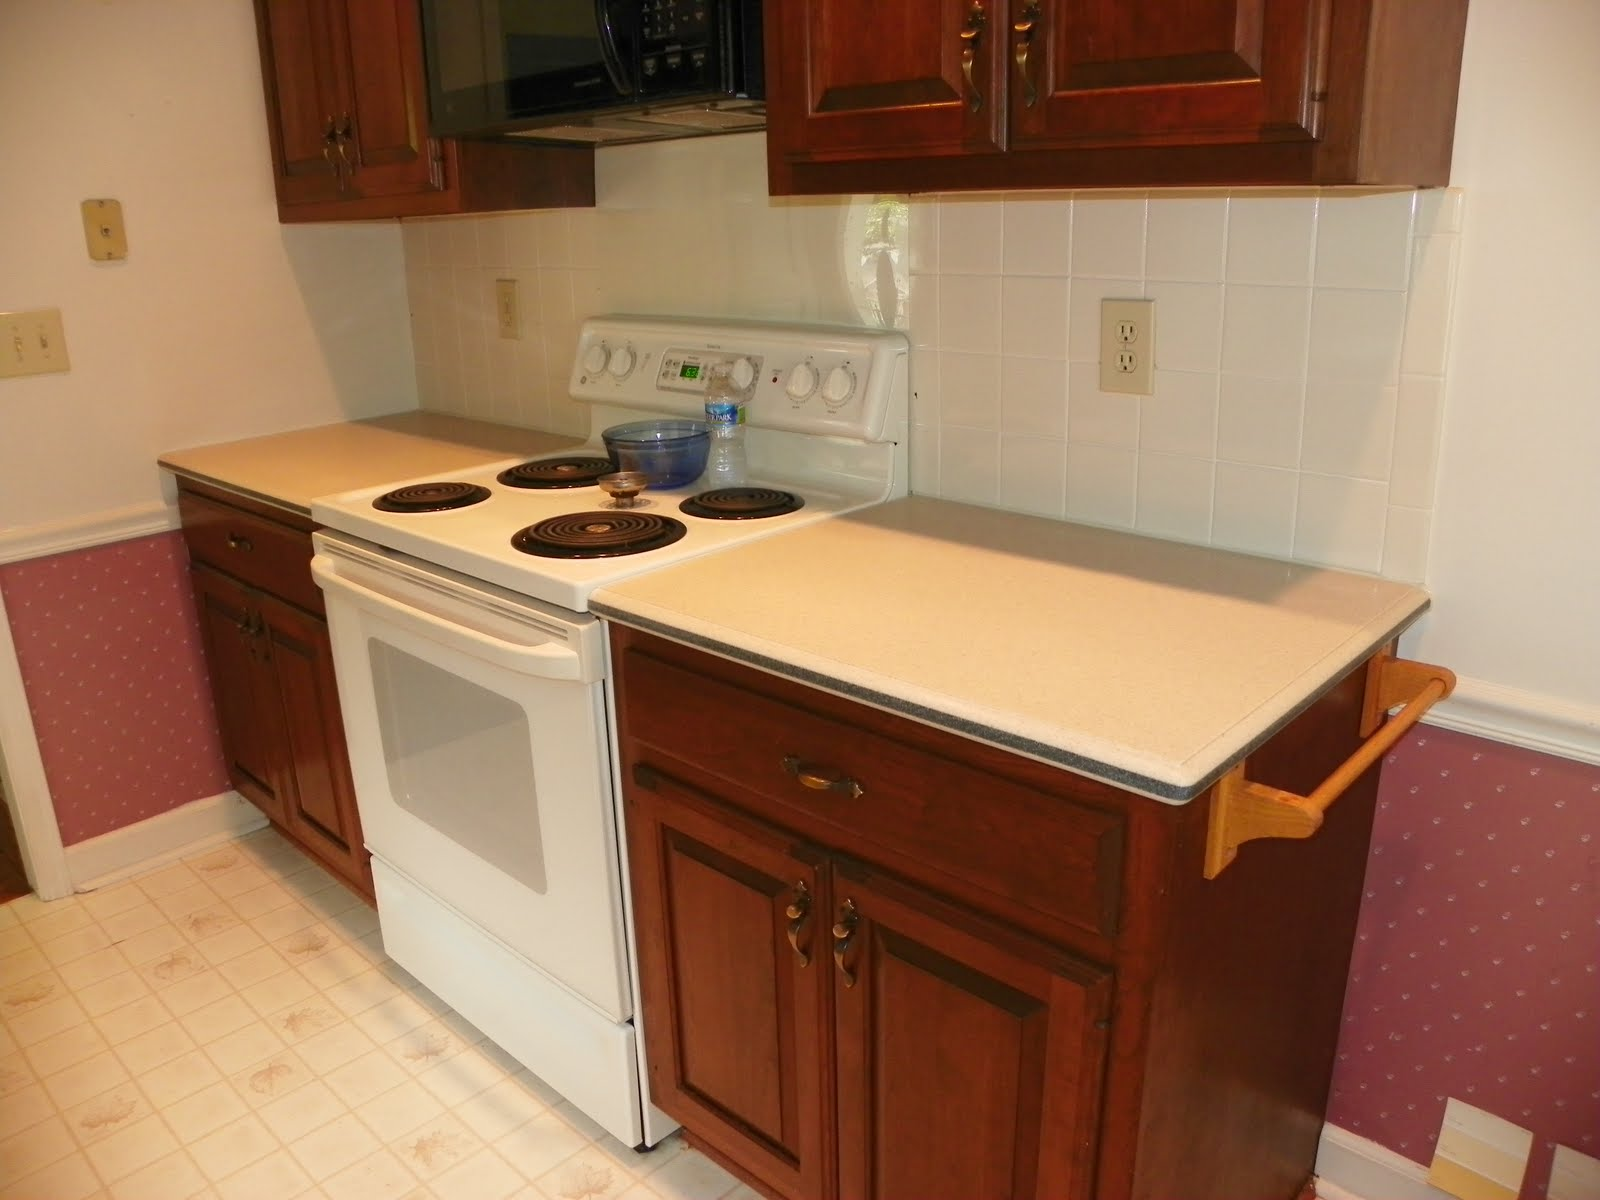 Countertop Repair Blog: Retro Fab Corian Countertop, Re Use Corian ...